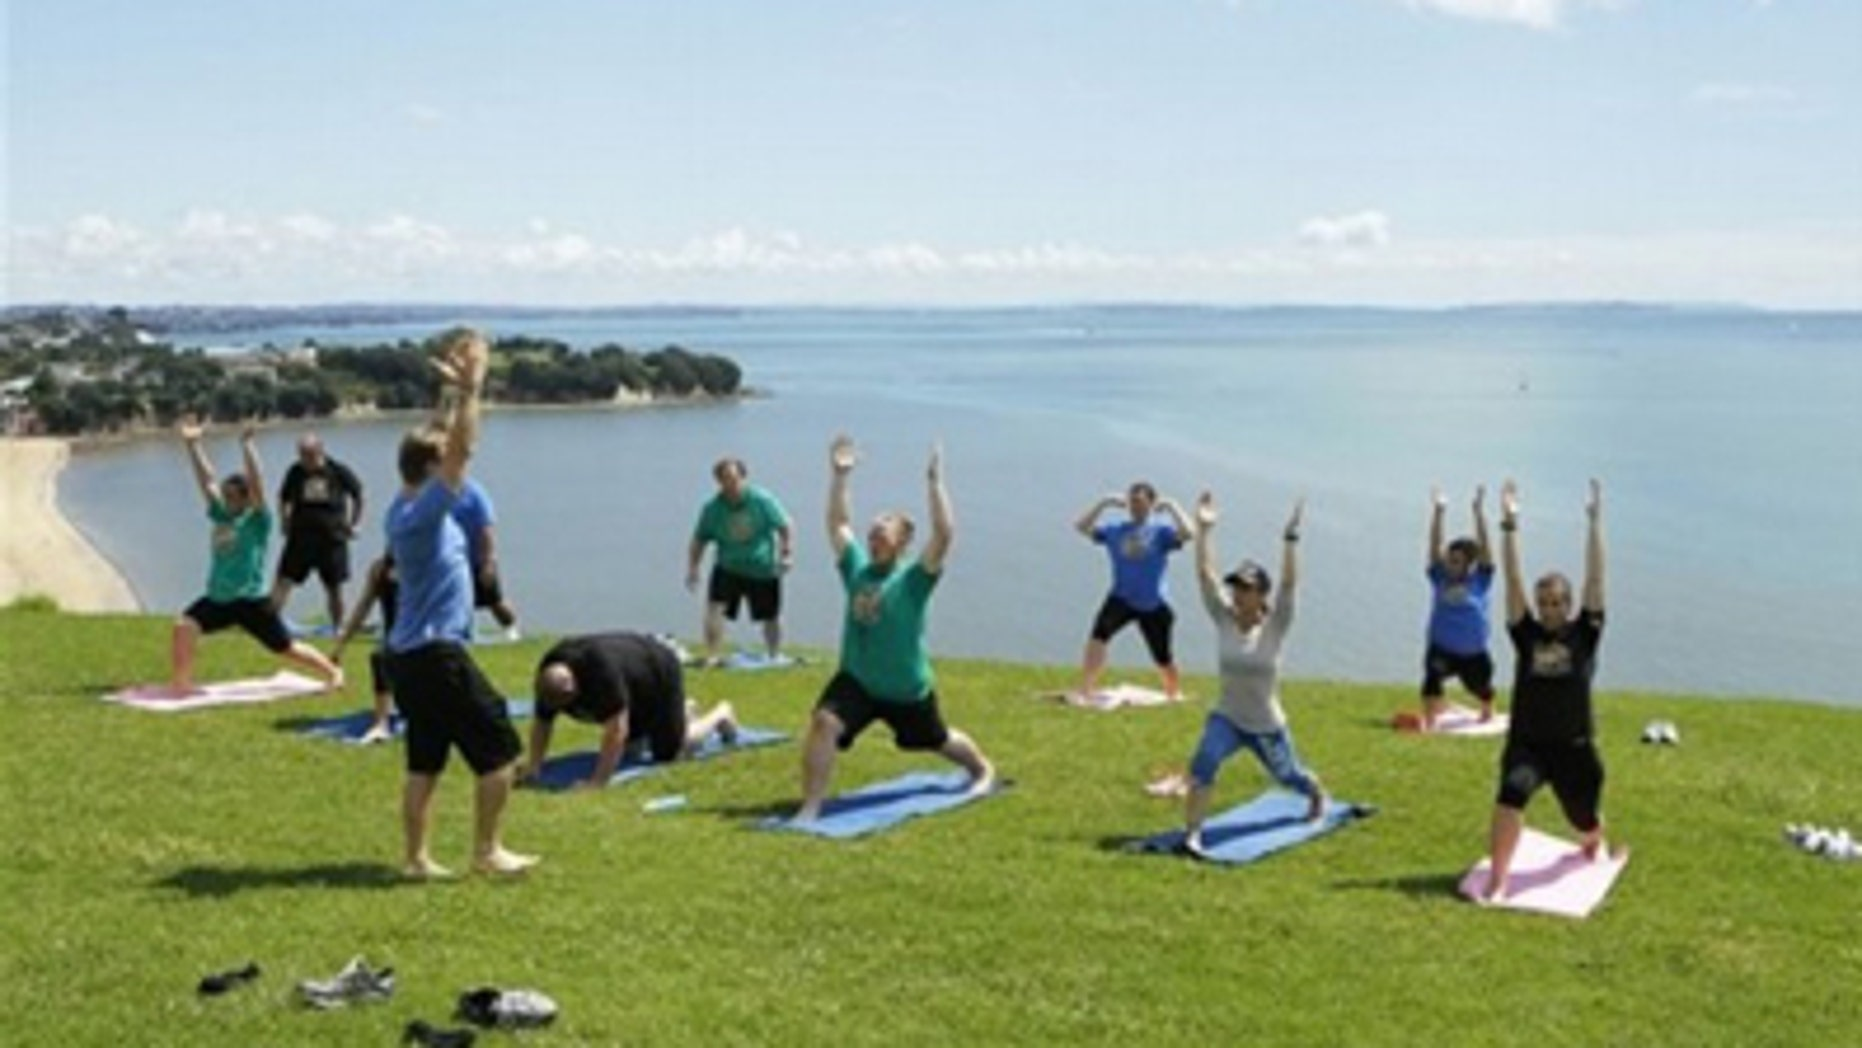 """Celebrity trainers Bob Harper and Jillian Michaels lead contestants from NBC's """"The Biggest Loser"""" in a yoga workout against the picturesque backdrop of Auckland, New Zealand. The show recently filmed two special New Zealand episodes in the youngest country on earth."""